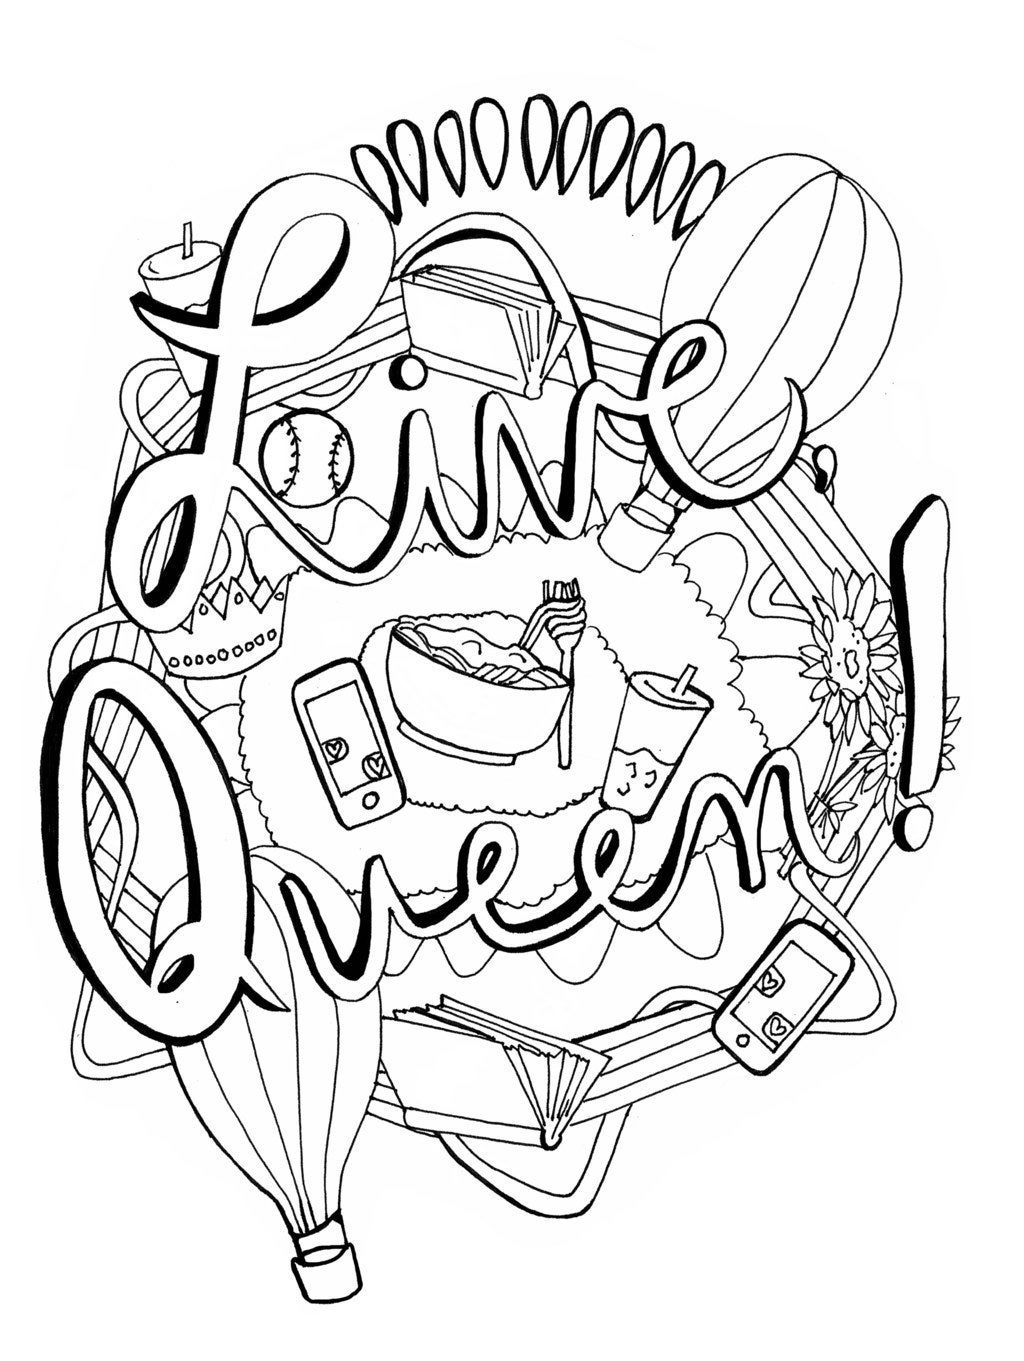 This Is The Only Coloring Book Youll Need After A Breakup